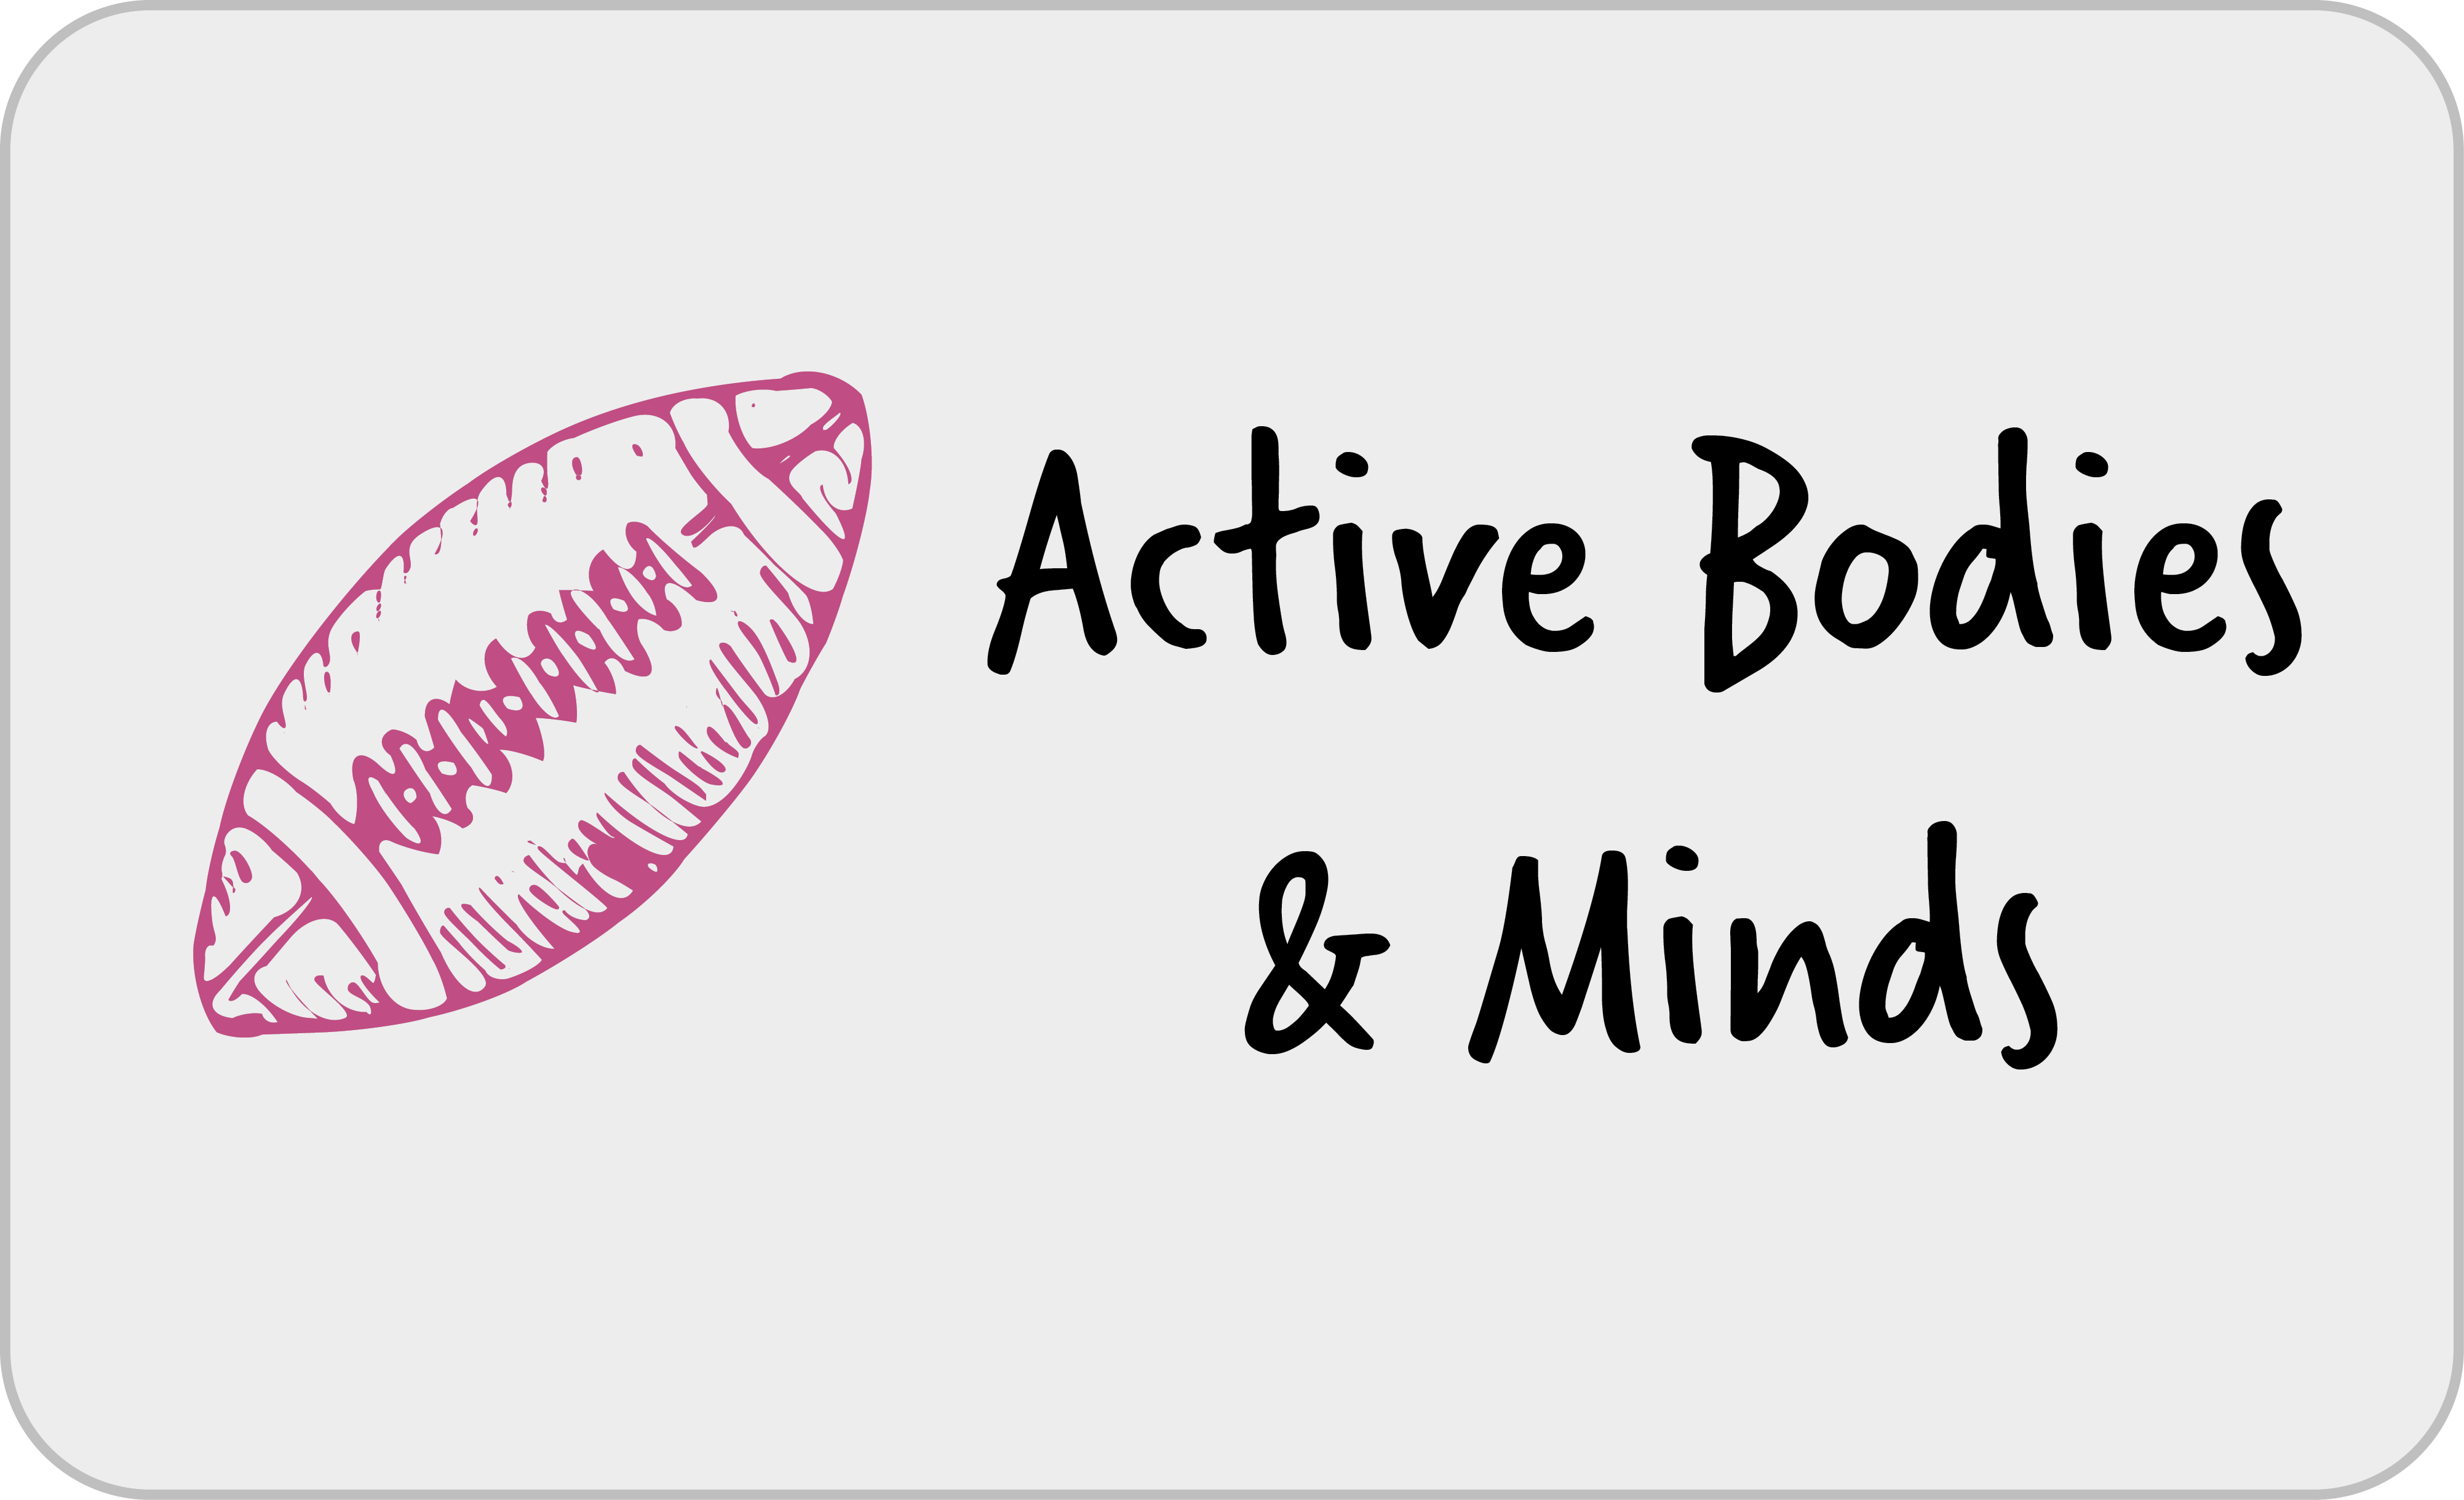 Active Bodies and Minds